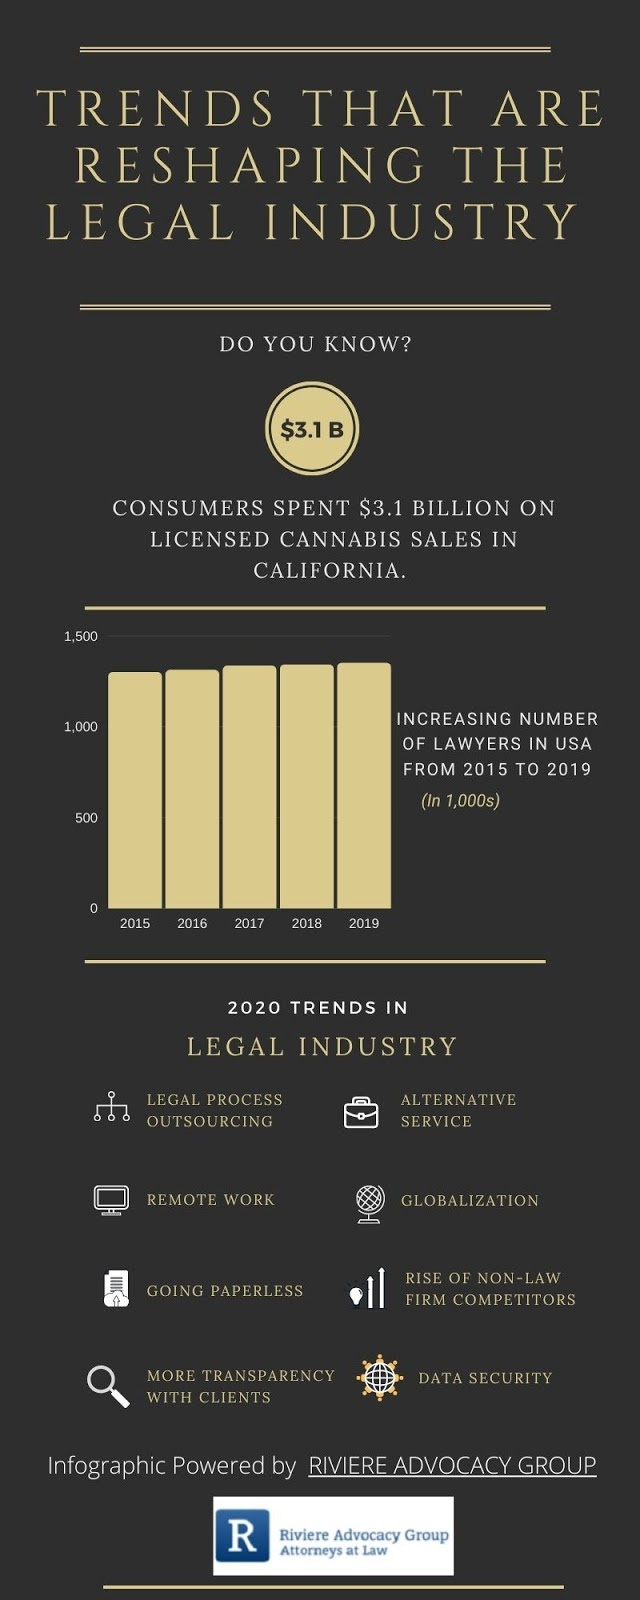 Trends that are Reshaping the Legal Industry #Infographic